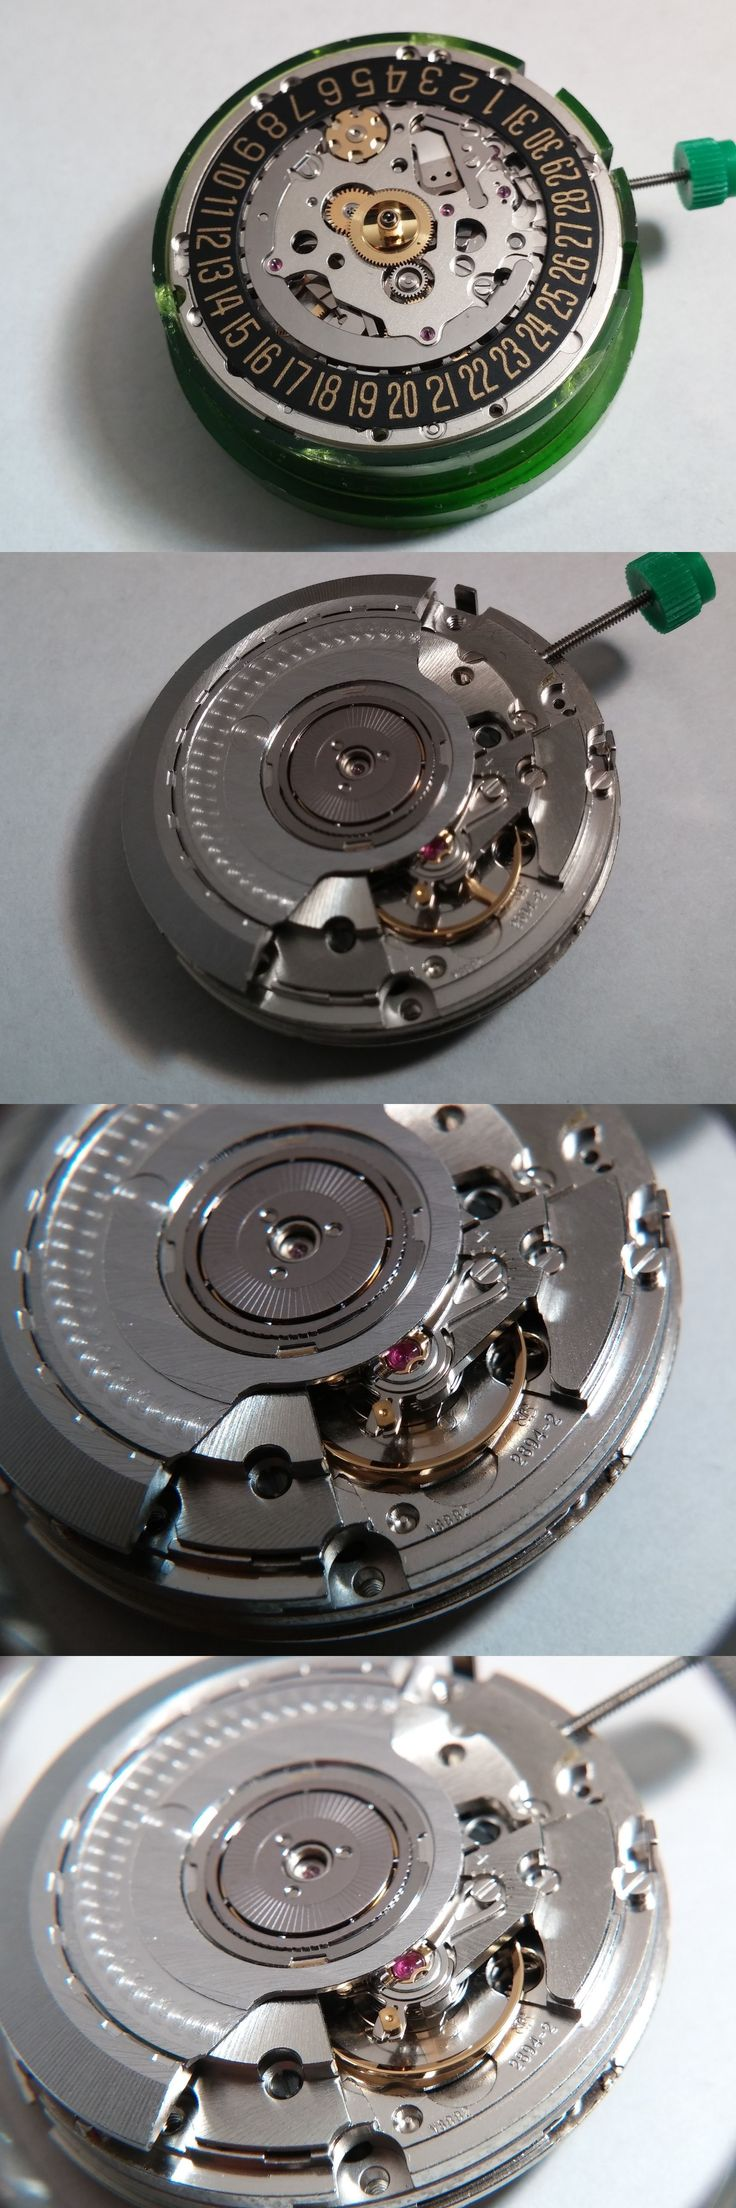 Other Watch Parts 10324: Eta 2894-2 Movement, Swiss Made, Date At 3 O Clock. 37 Jewels, Black White Date -> BUY IT NOW ONLY: $550 on eBay!